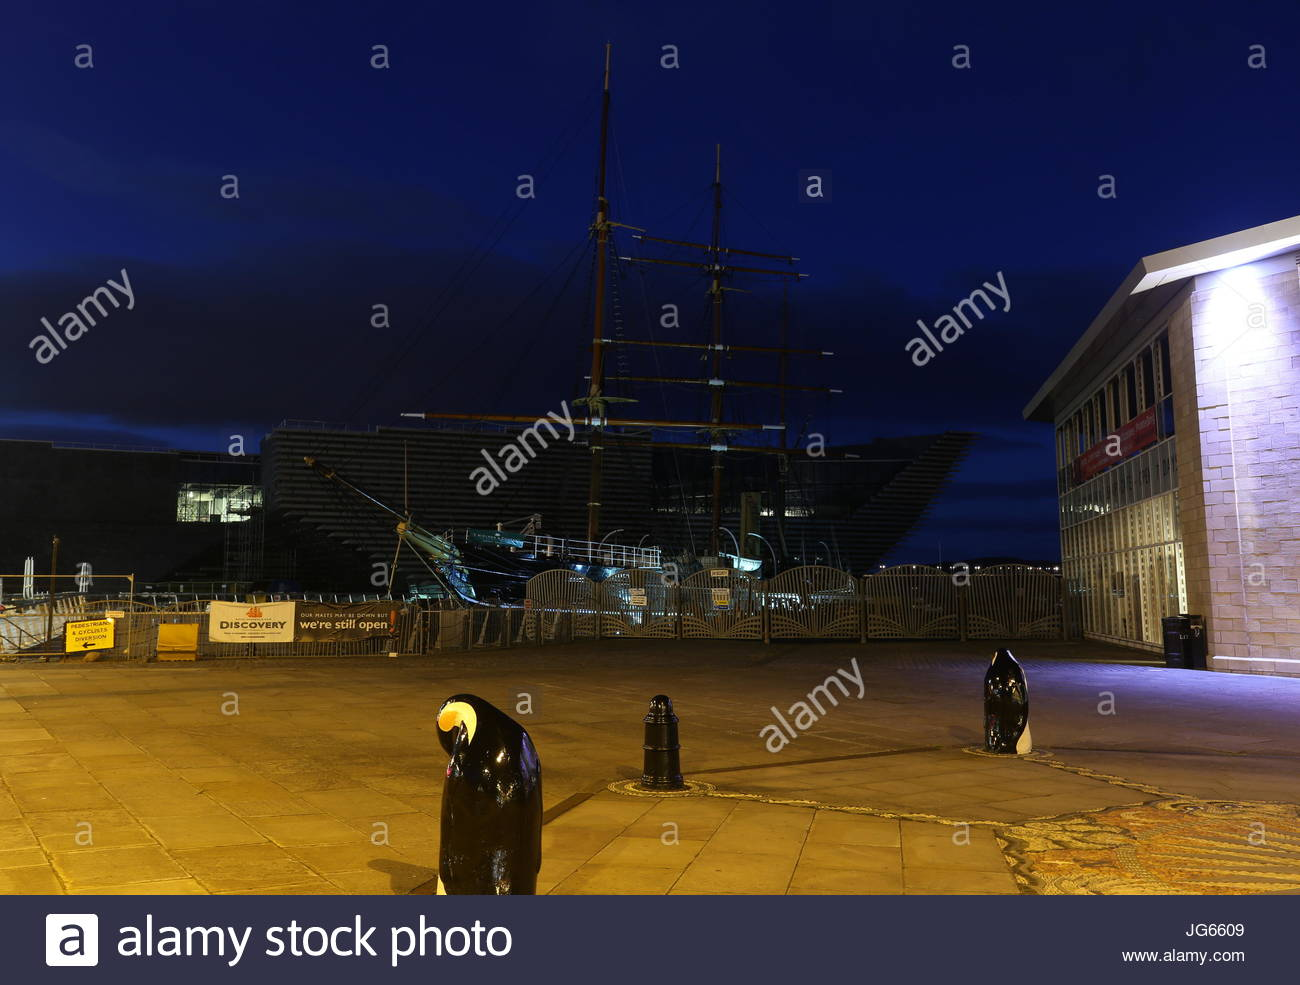 RRS Discovery by night Dundee Scotland  July 2017 - Stock Image